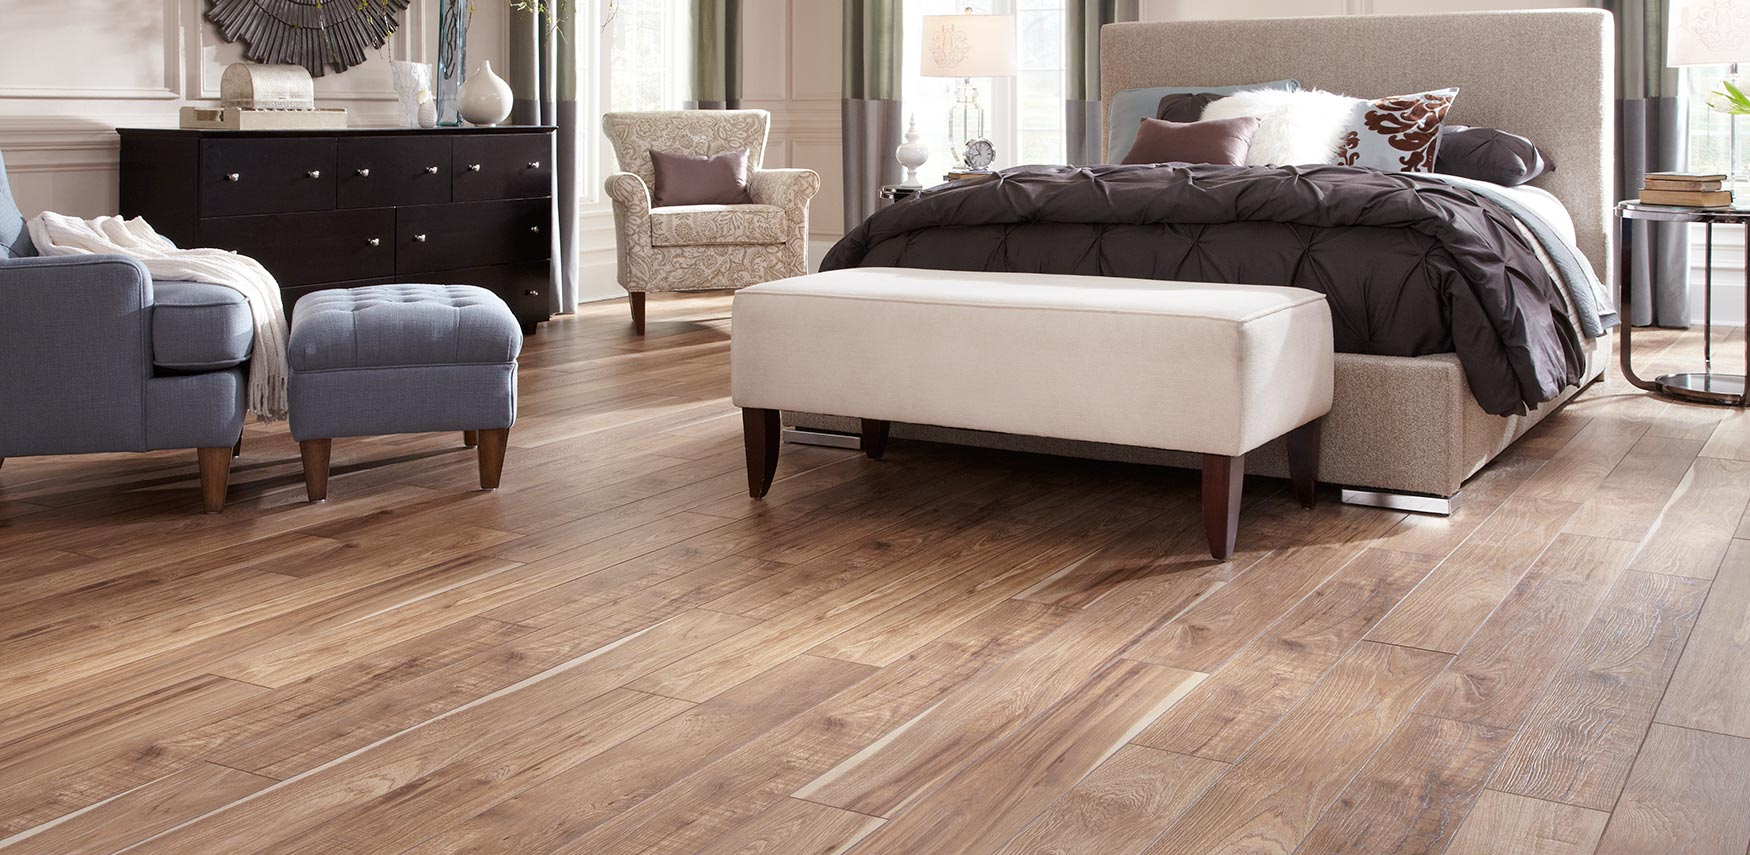 Laminate Flooring Vs Wood Custom Home Interiors